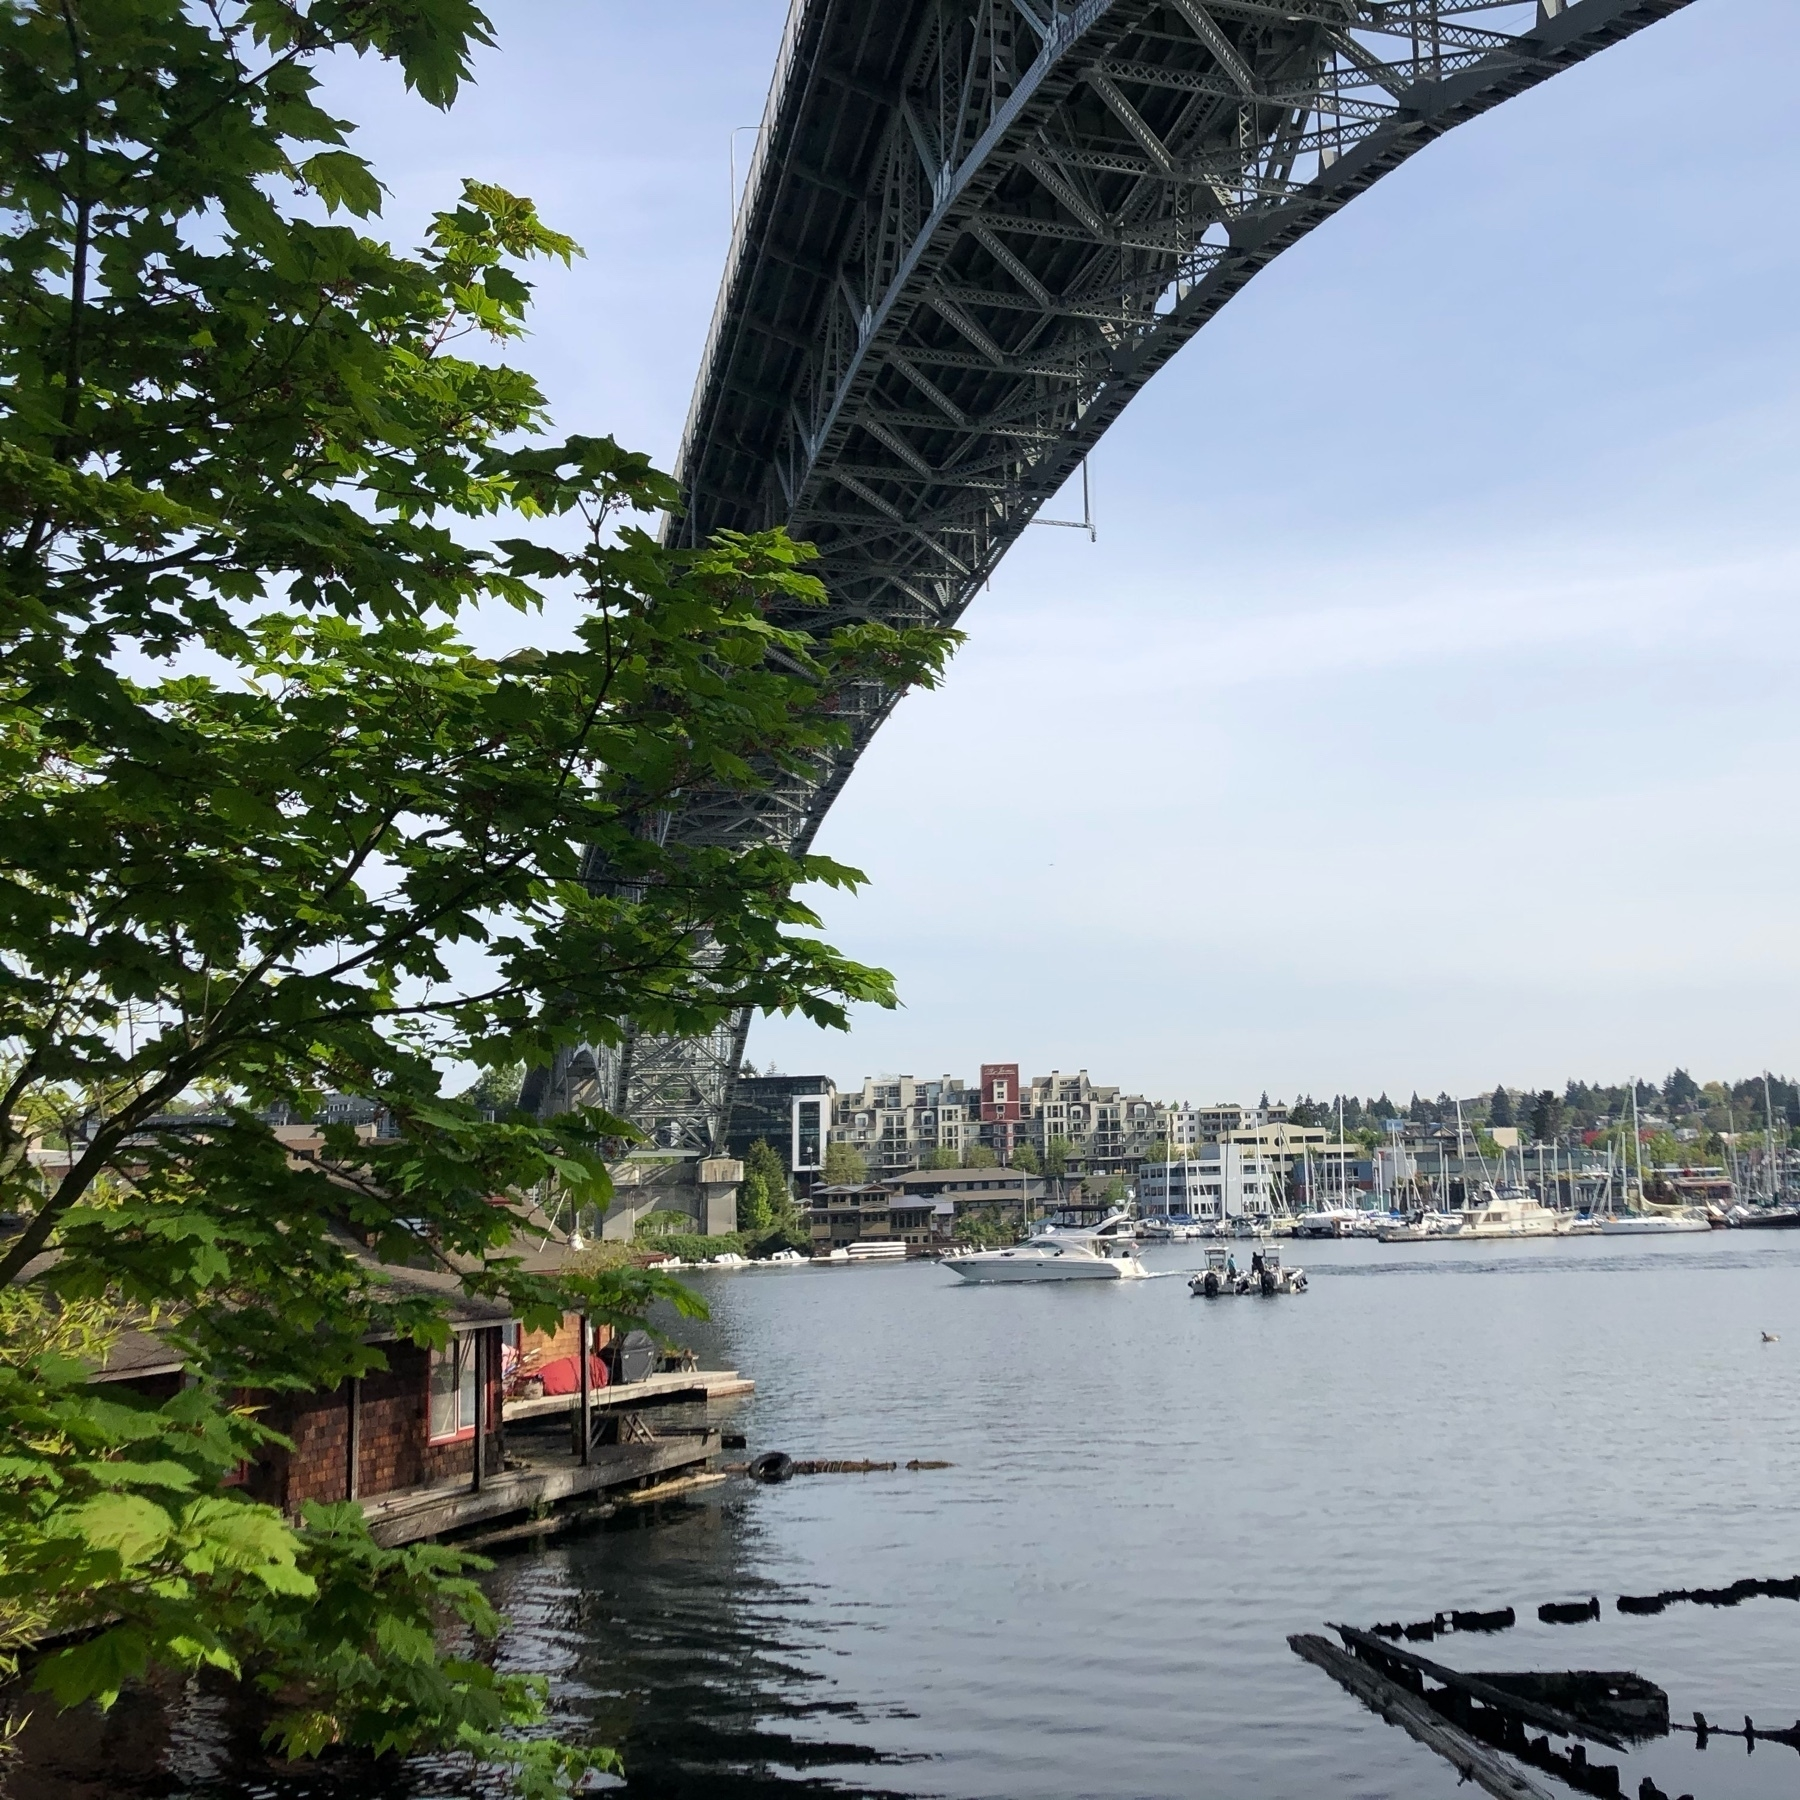 A tall bridge arches over lake union. Many boats in the distance.